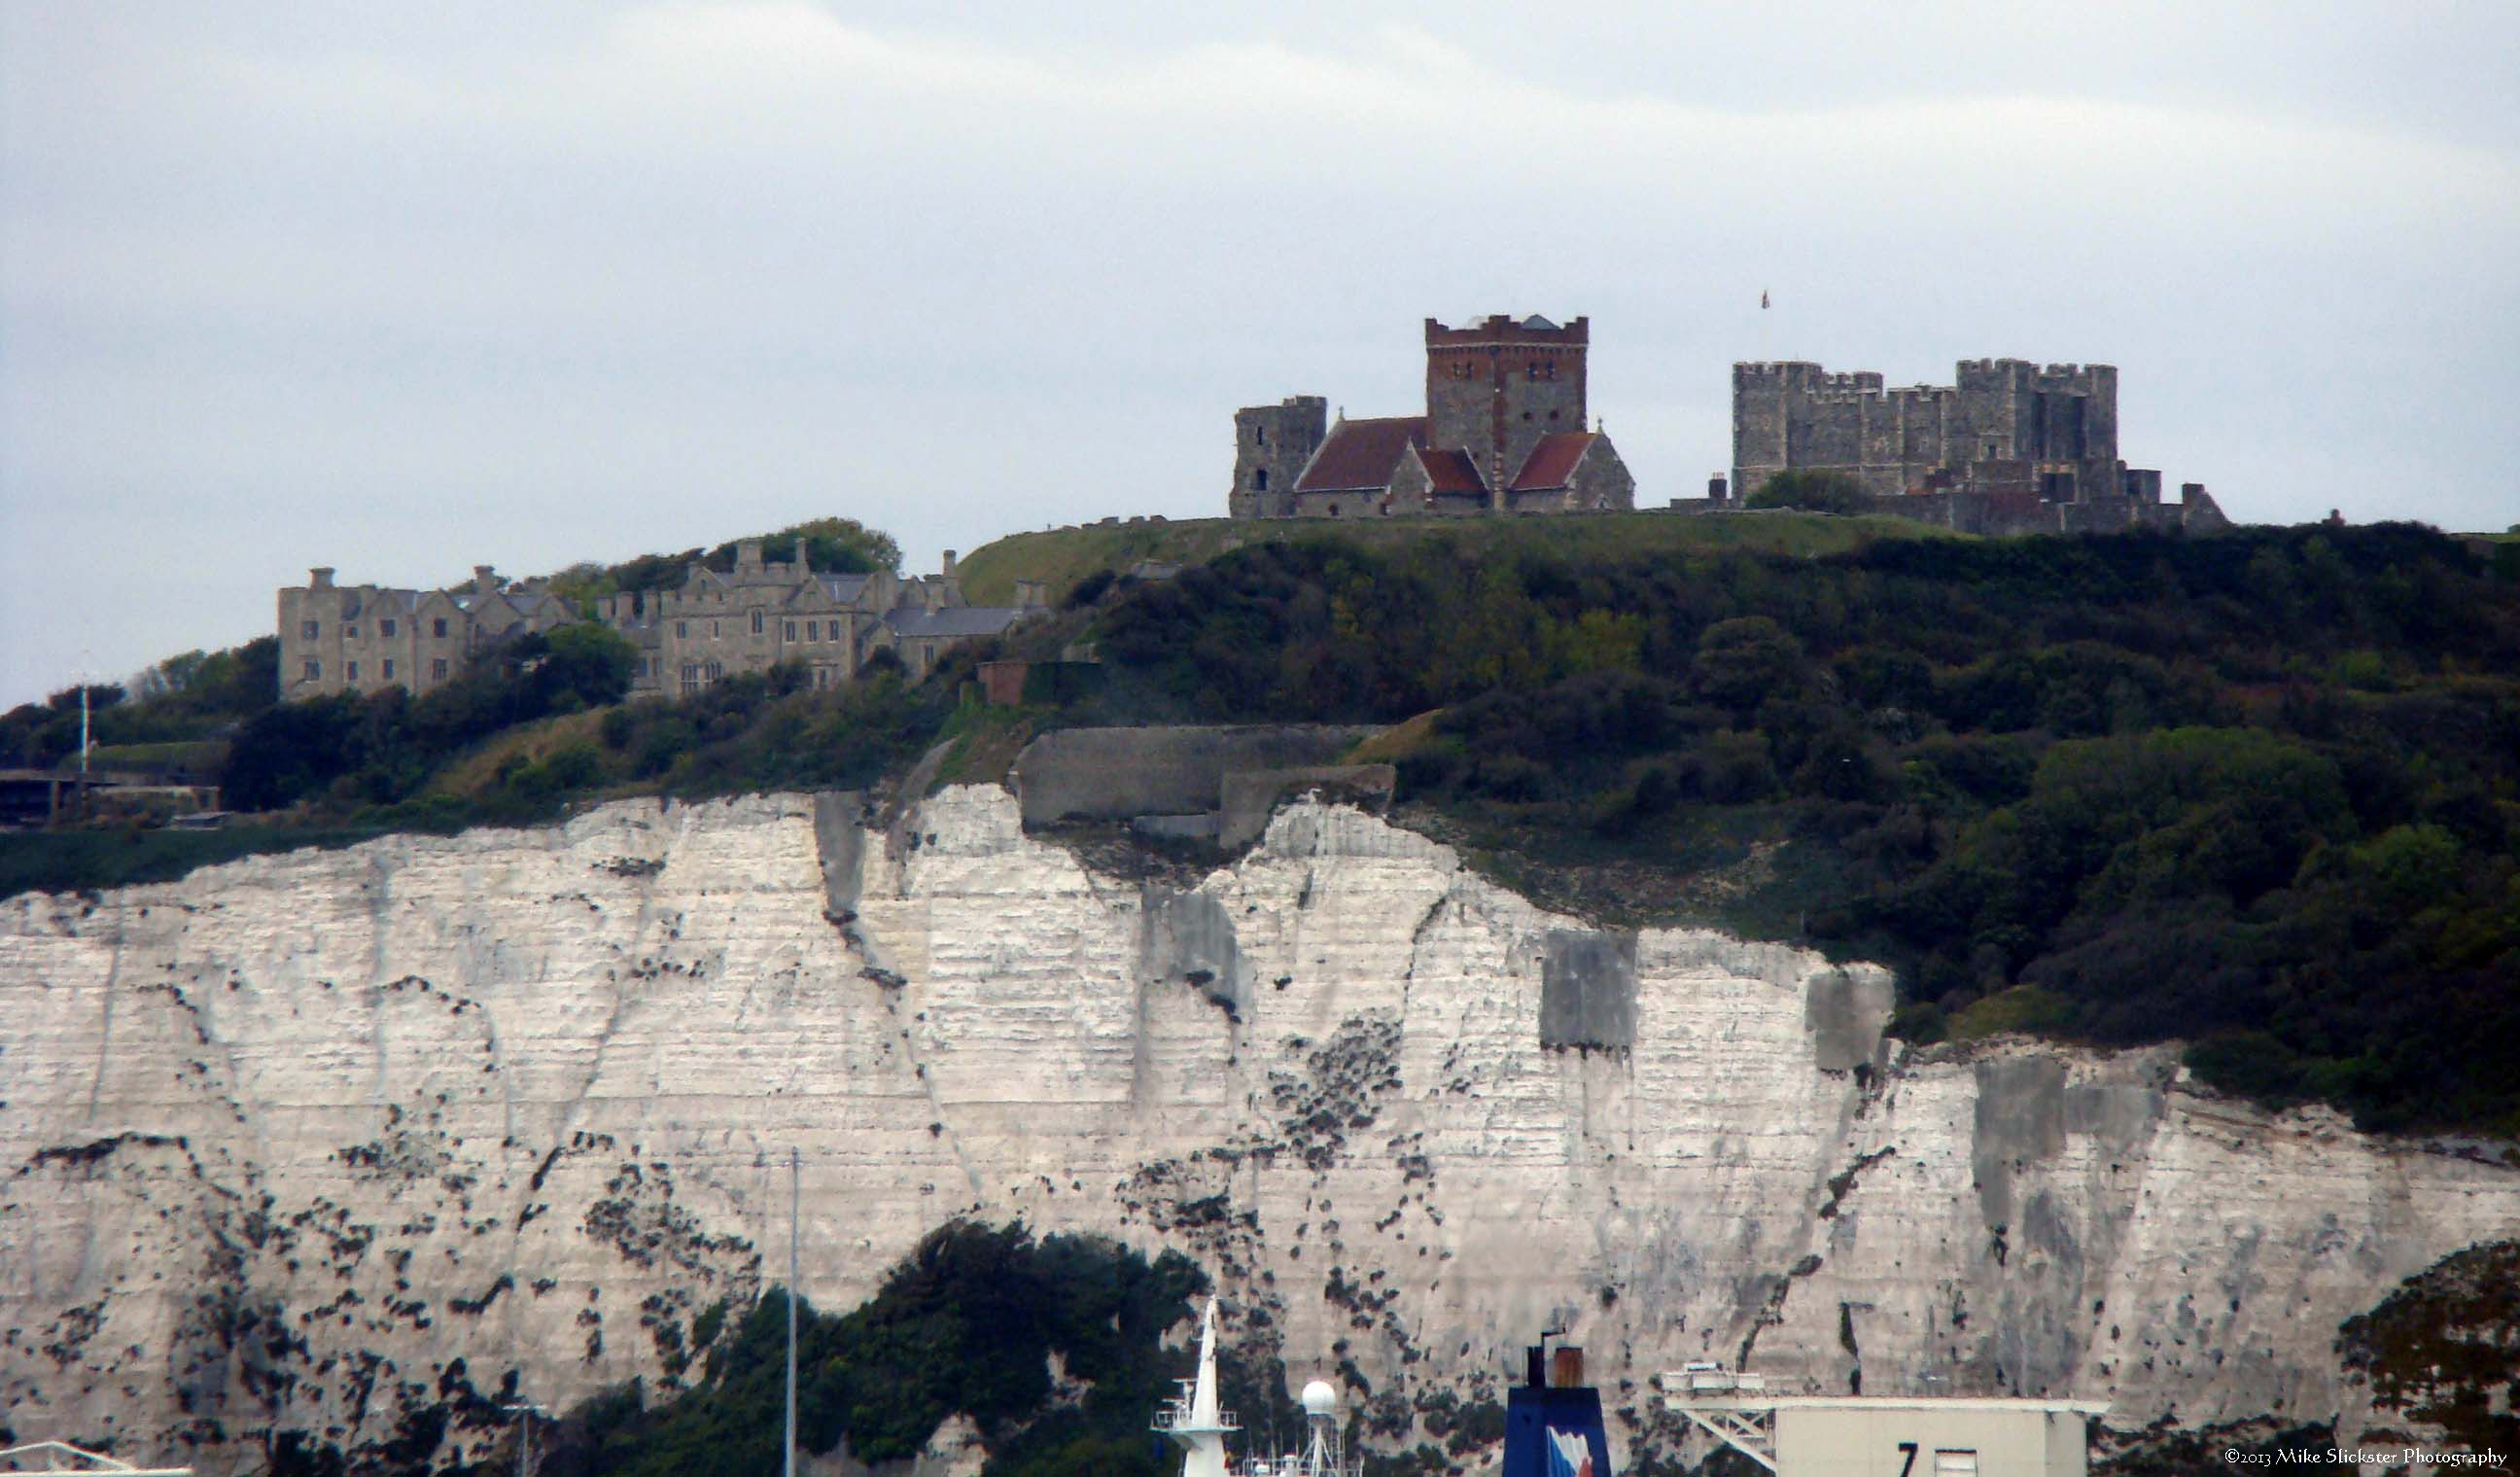 Castle and white cliffs below it, as seen from the ferryboat at the departure across the English Channel to France.